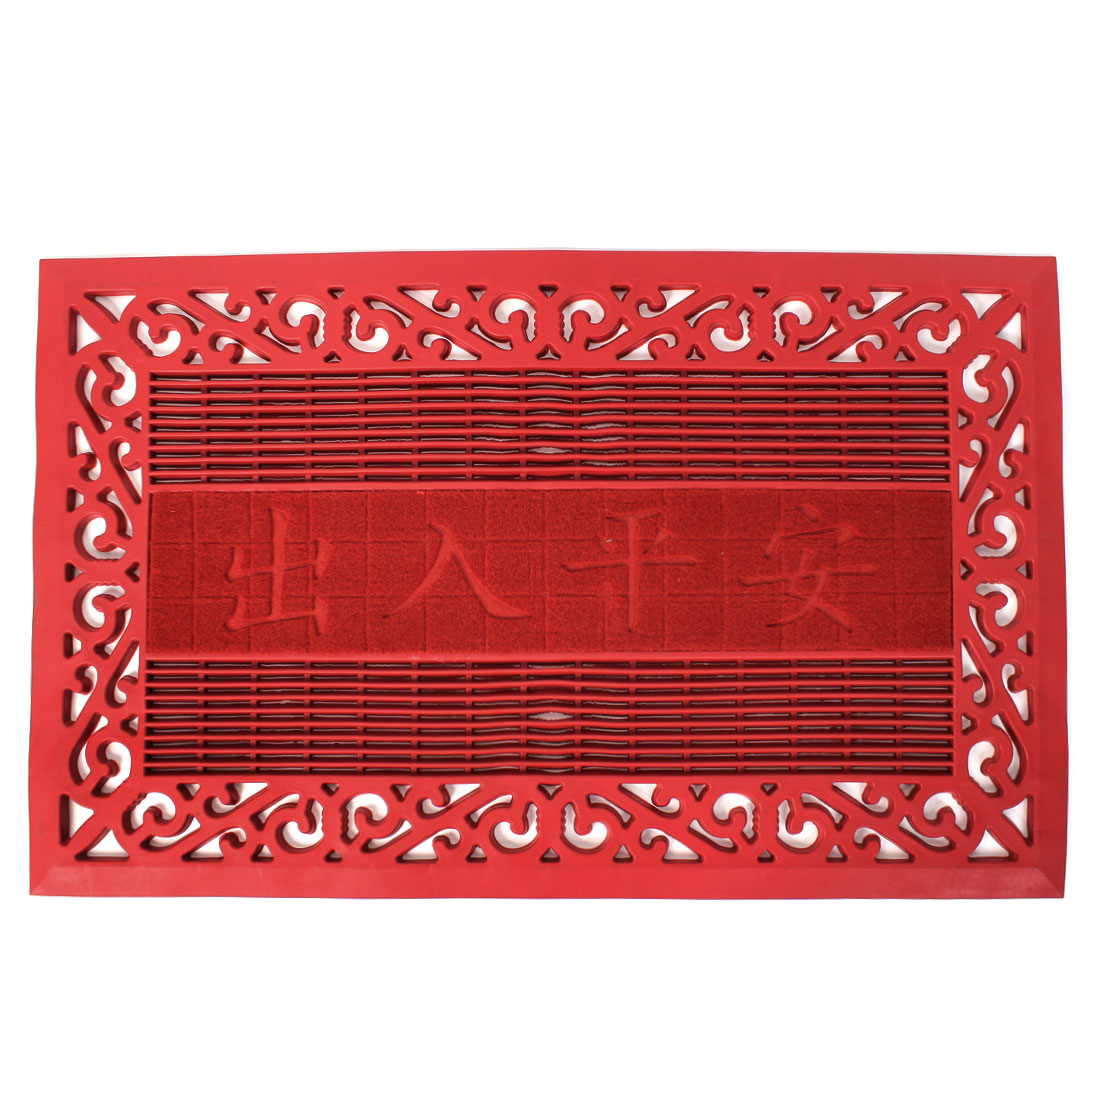 Red Anti Slip Hollow Rubber Floor Door Mat 78cm x 48cm